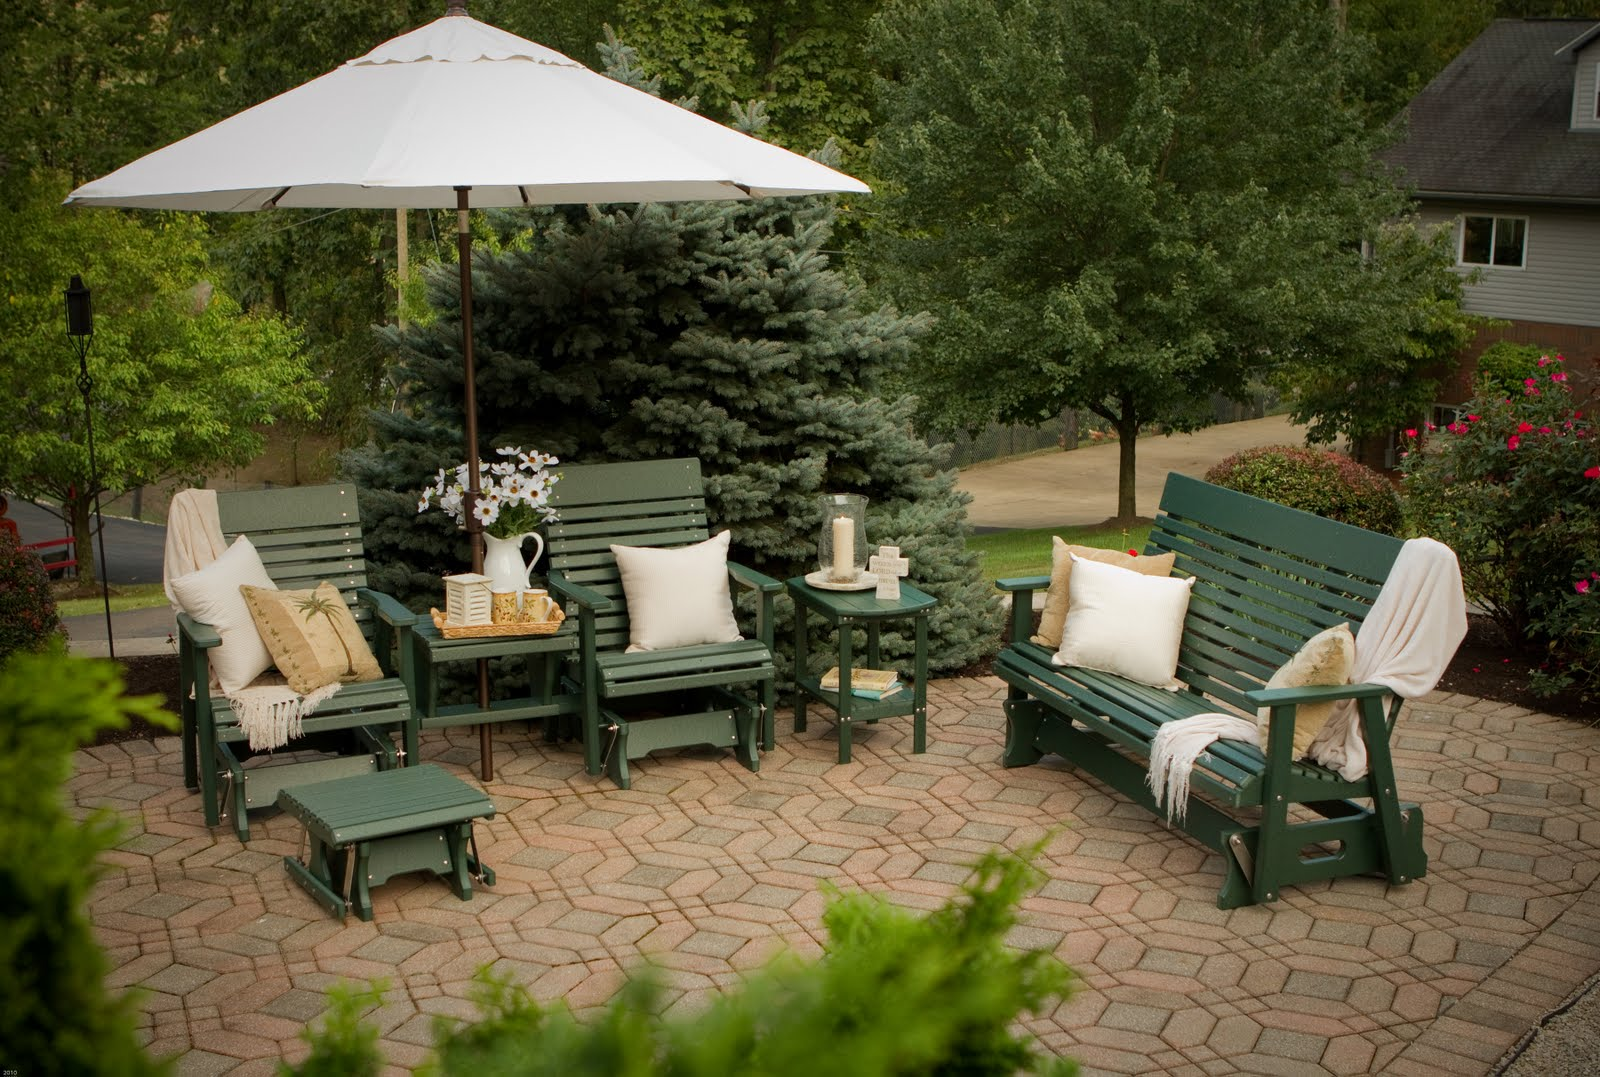 The recycle story from plastic milk jugs to beautiful outdoor furniture